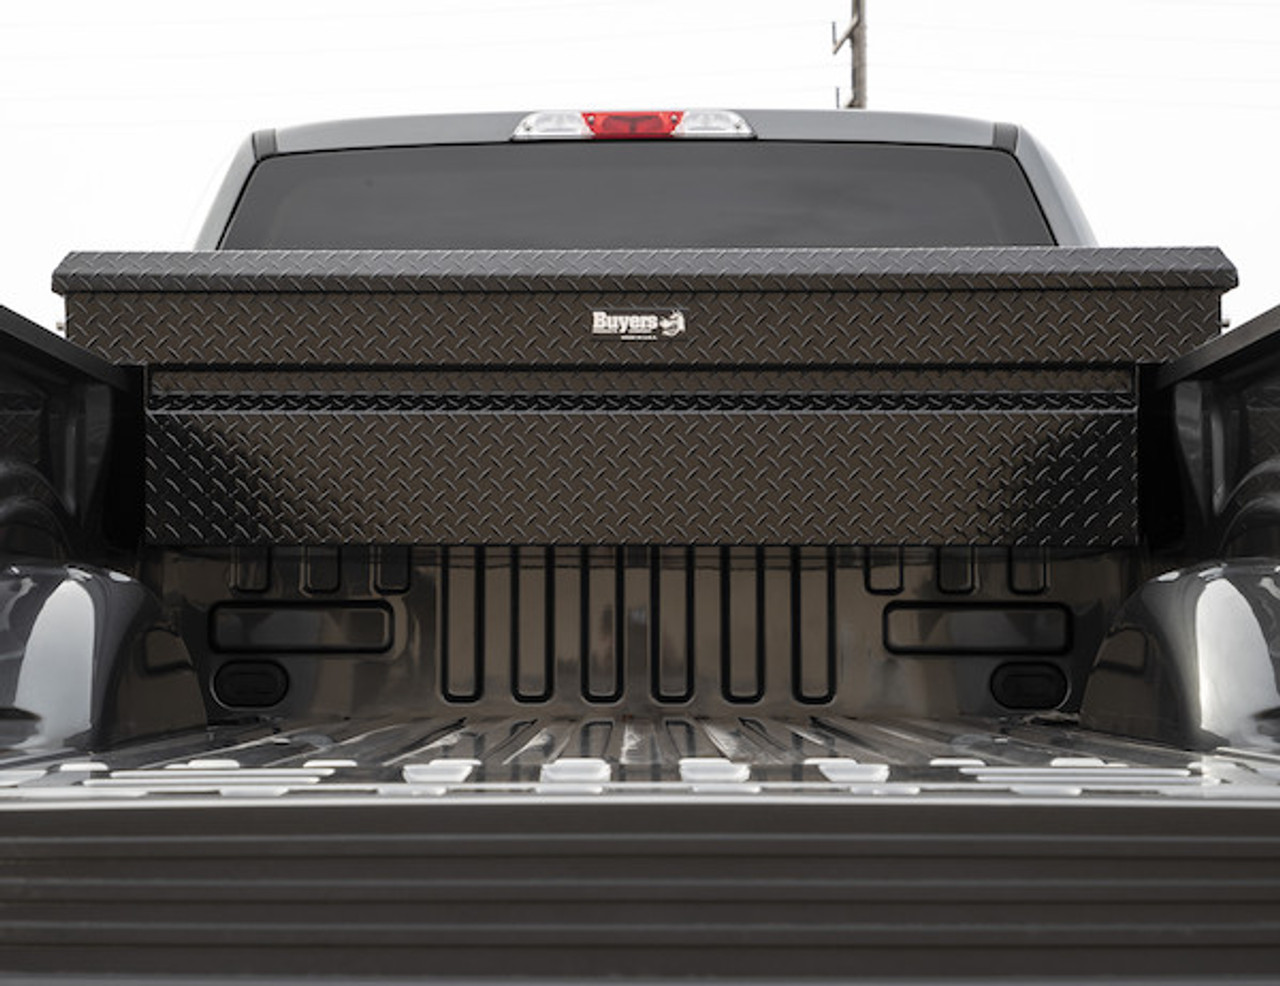 "1729415 BUYERS PRODUCTS BLACK DIAMOND TREAD ALUMINUM CROSSOVER TRUCK TOOLBOX 23""HX20""DX71""W 3"